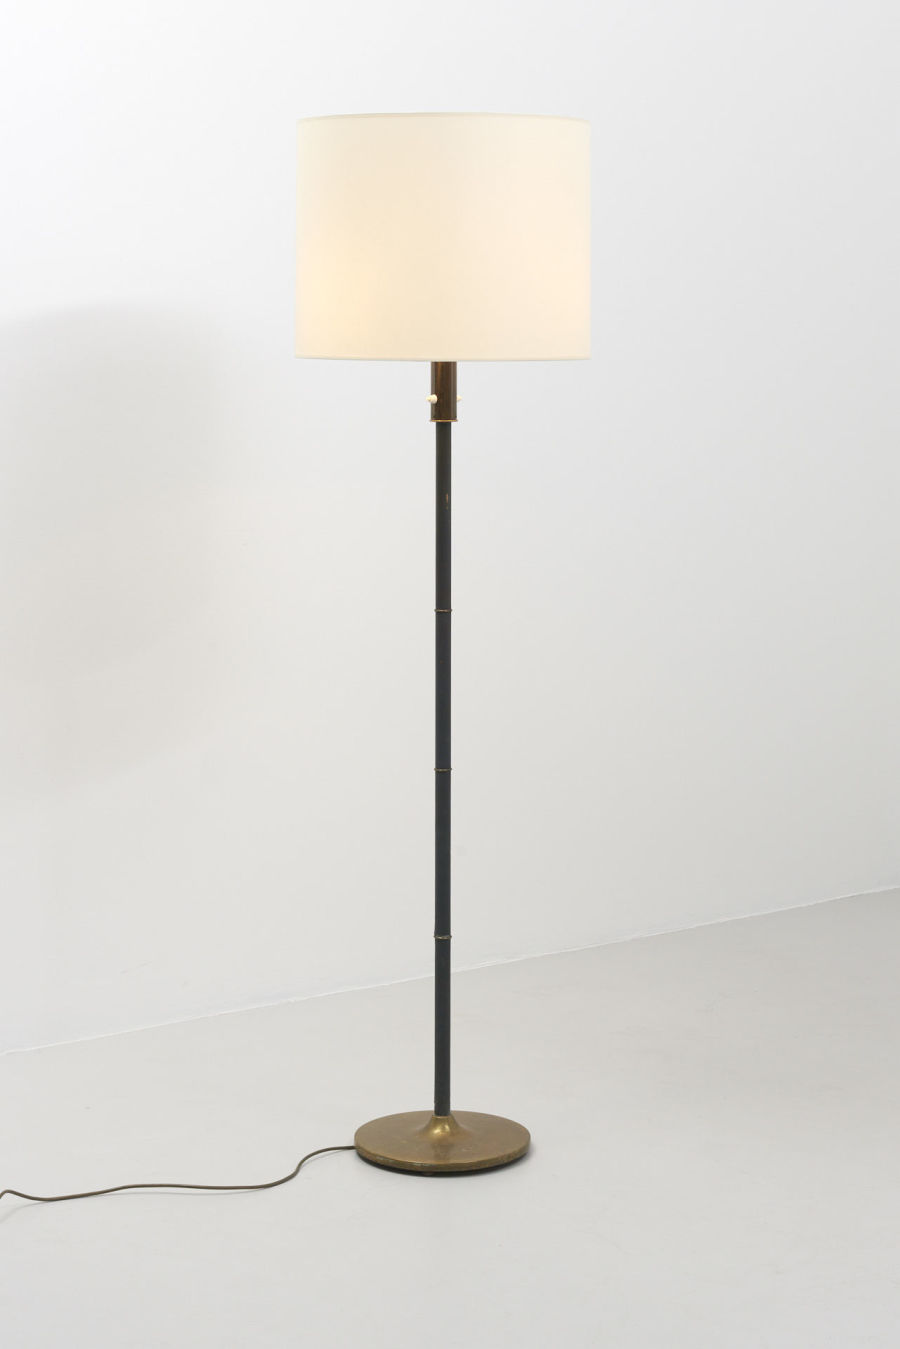 modestfurniture-vintage-2016-floor-lamp-brass-leather01